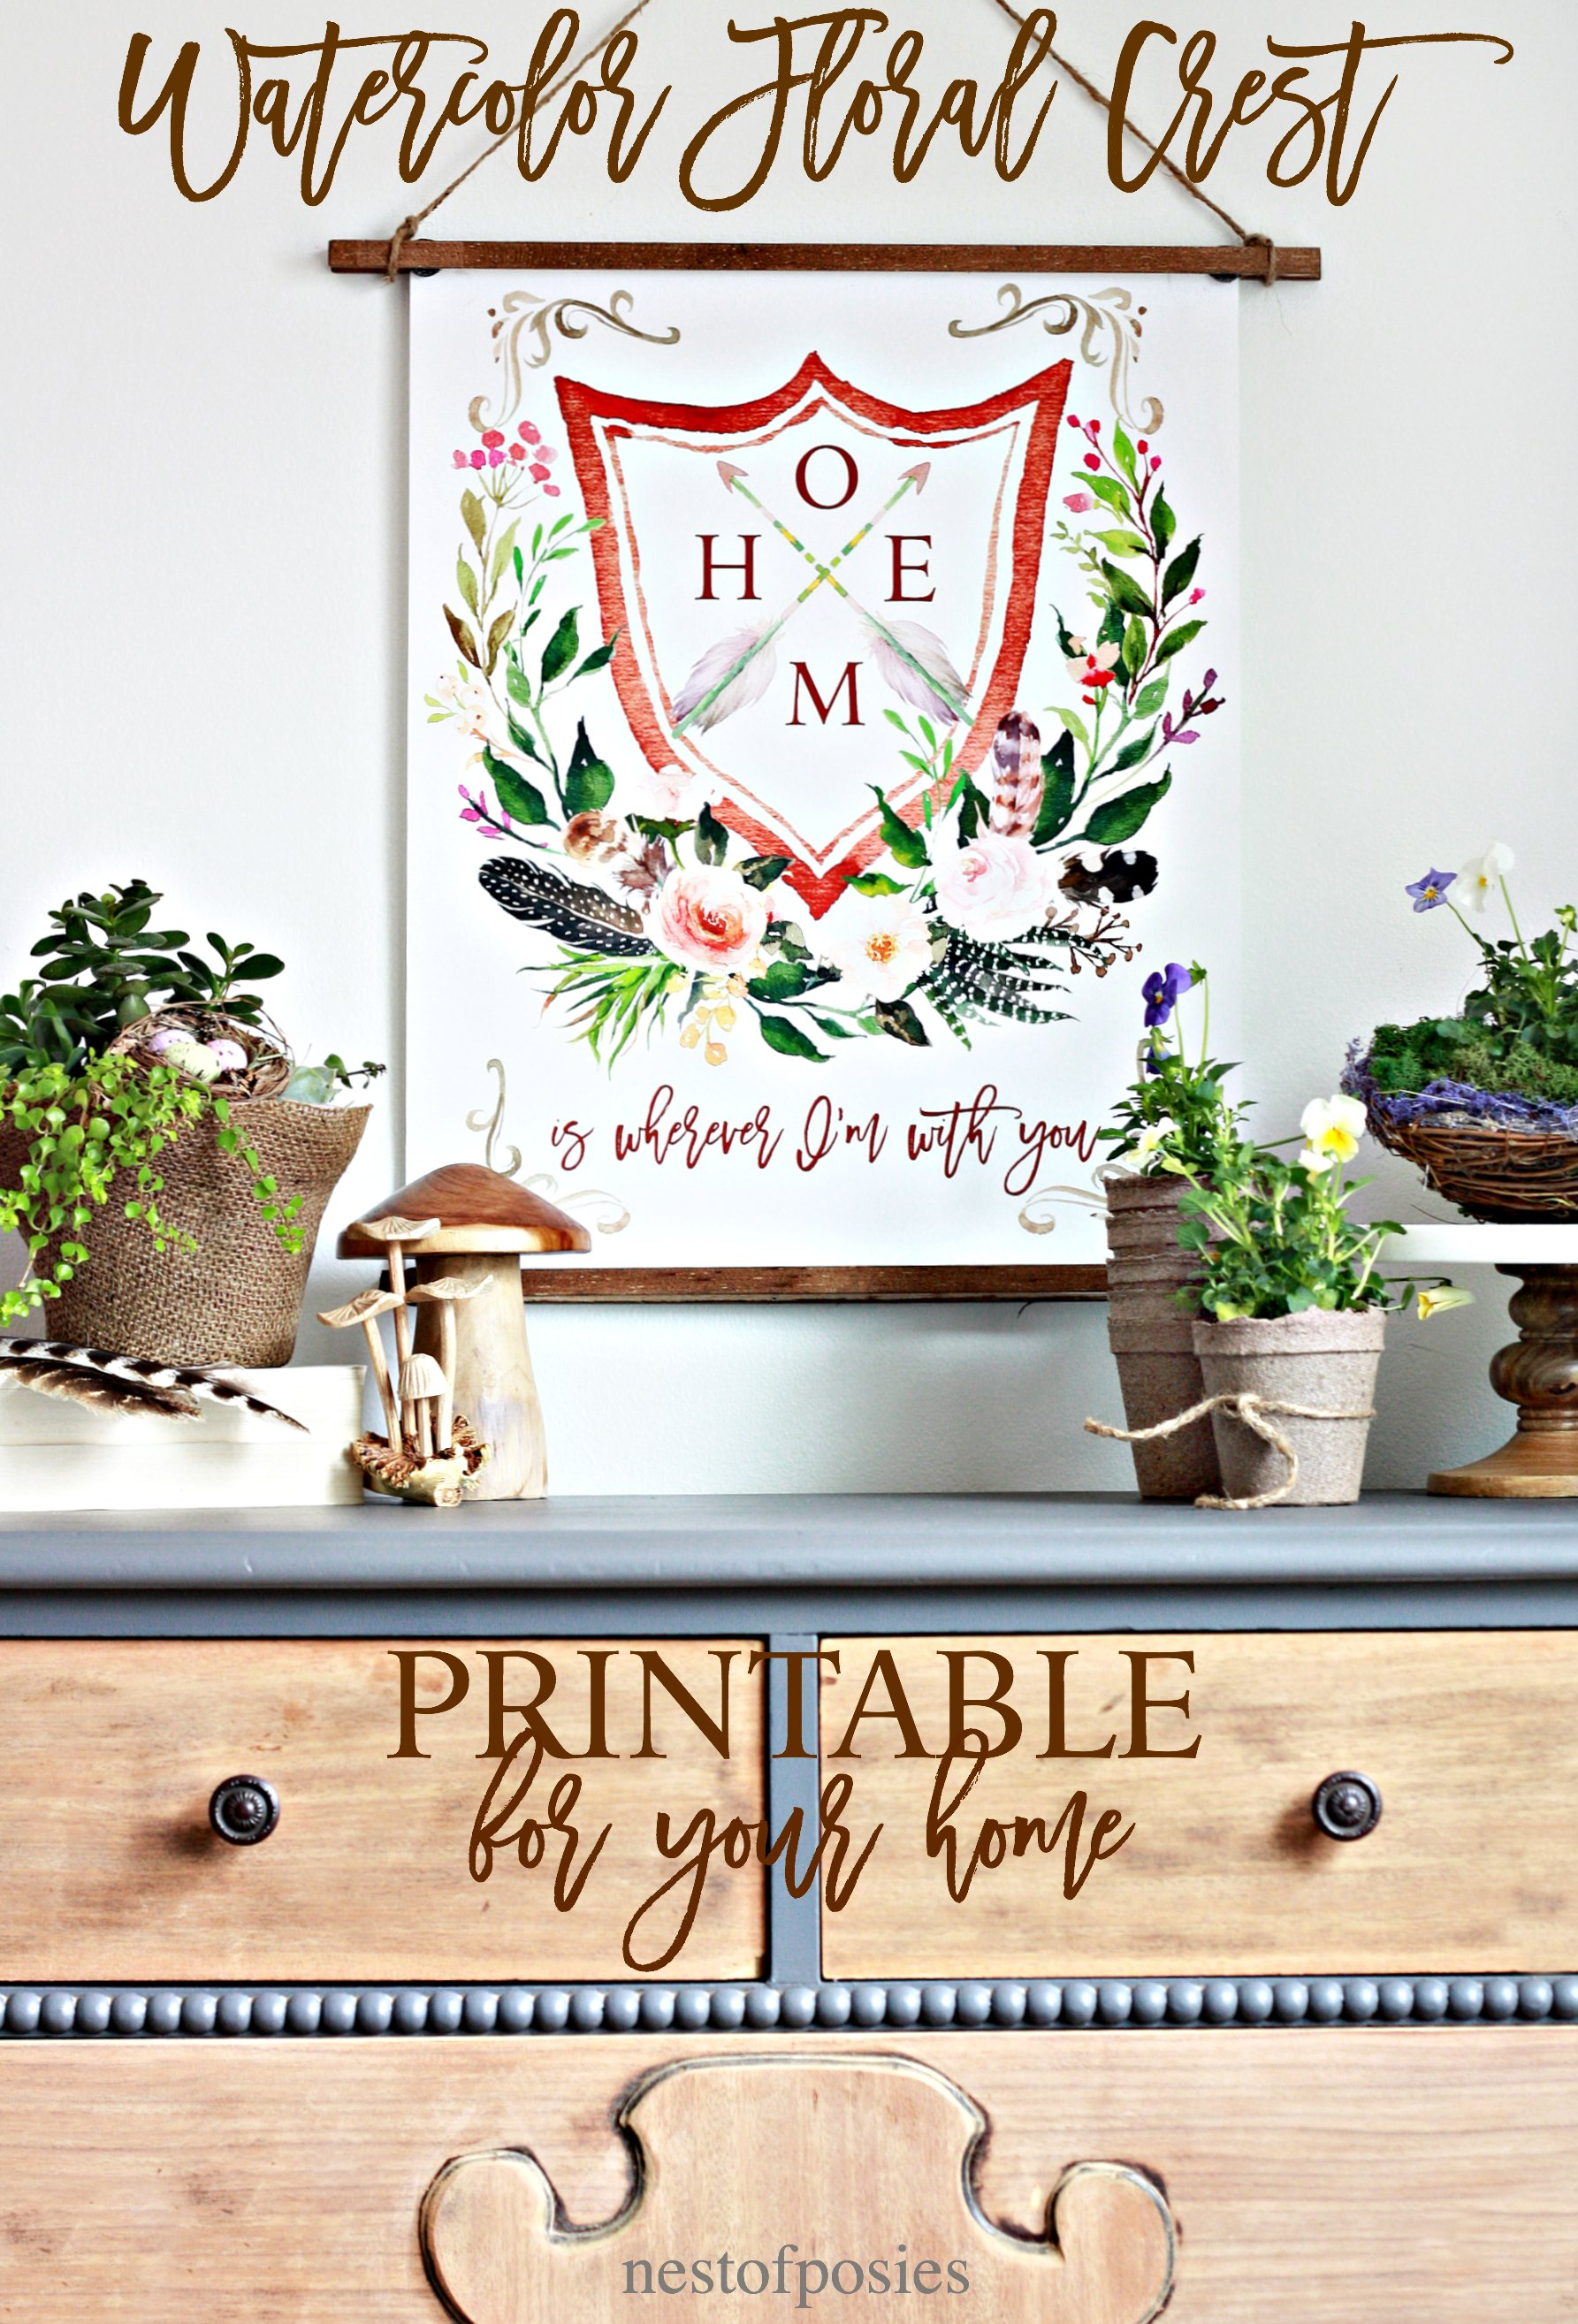 Watercolor Floral Crest Printable for your home.